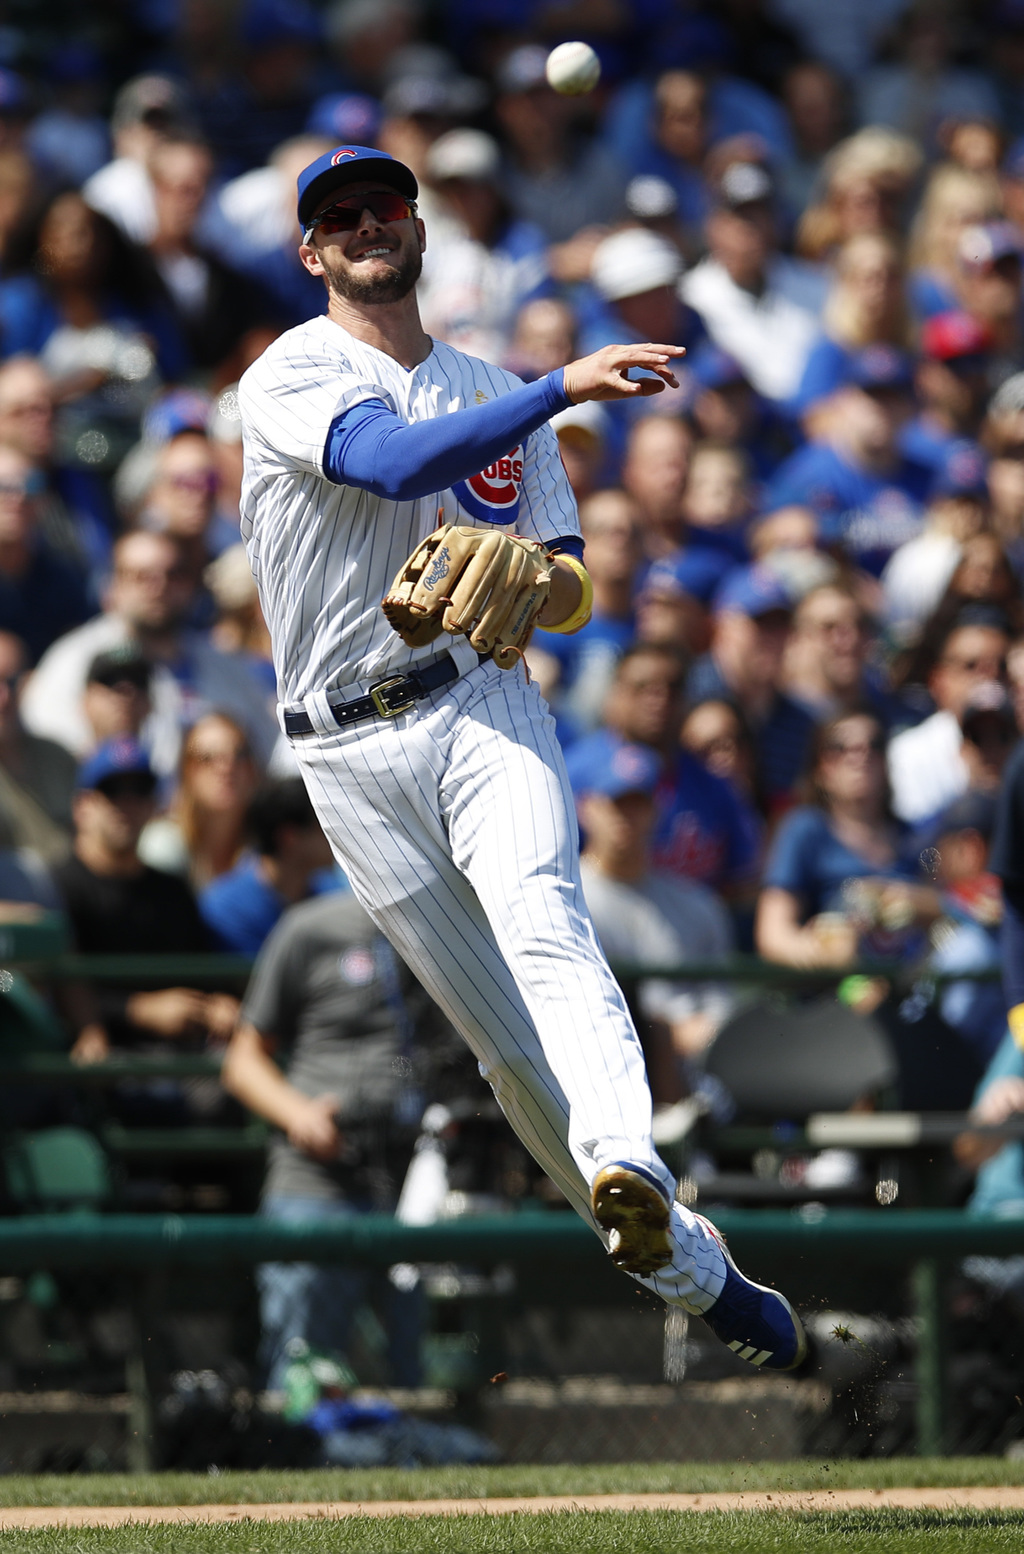 Chicago Cubs third baseman Kris Bryant (17) makes a throw to first base for an out on a ball hit by Atlanta Braves catcher Kurt Suzuki during the seco...